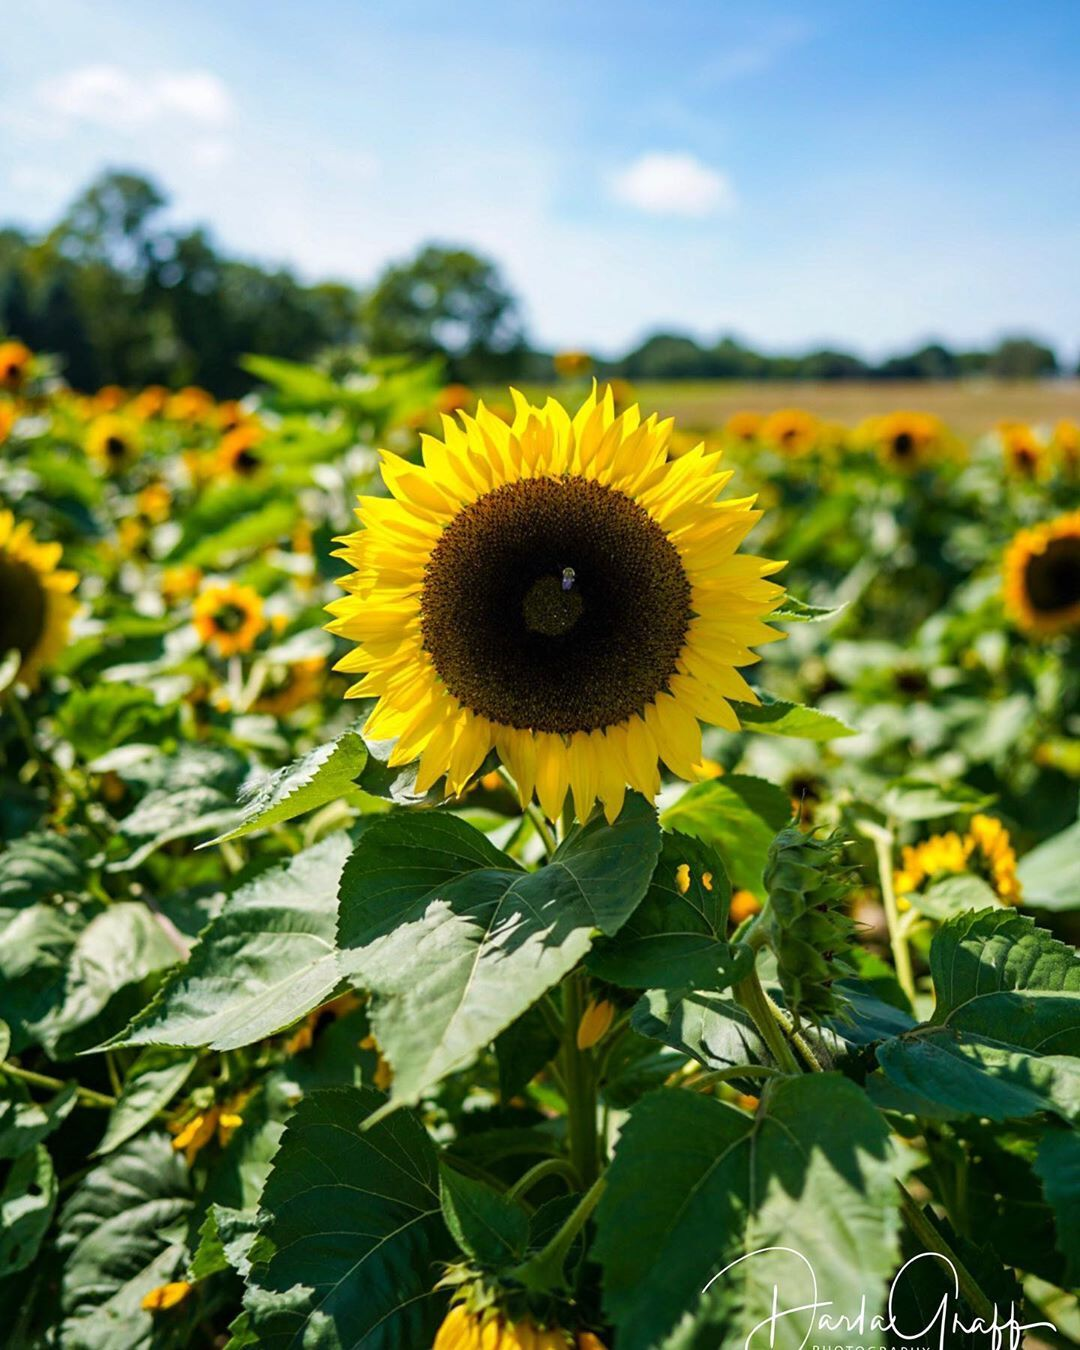 September Days Are Here Have A Happy Month September Sunflower Sunflowers Sunflowers Sunflowerfield Garden Flowers Flower Naturelovers